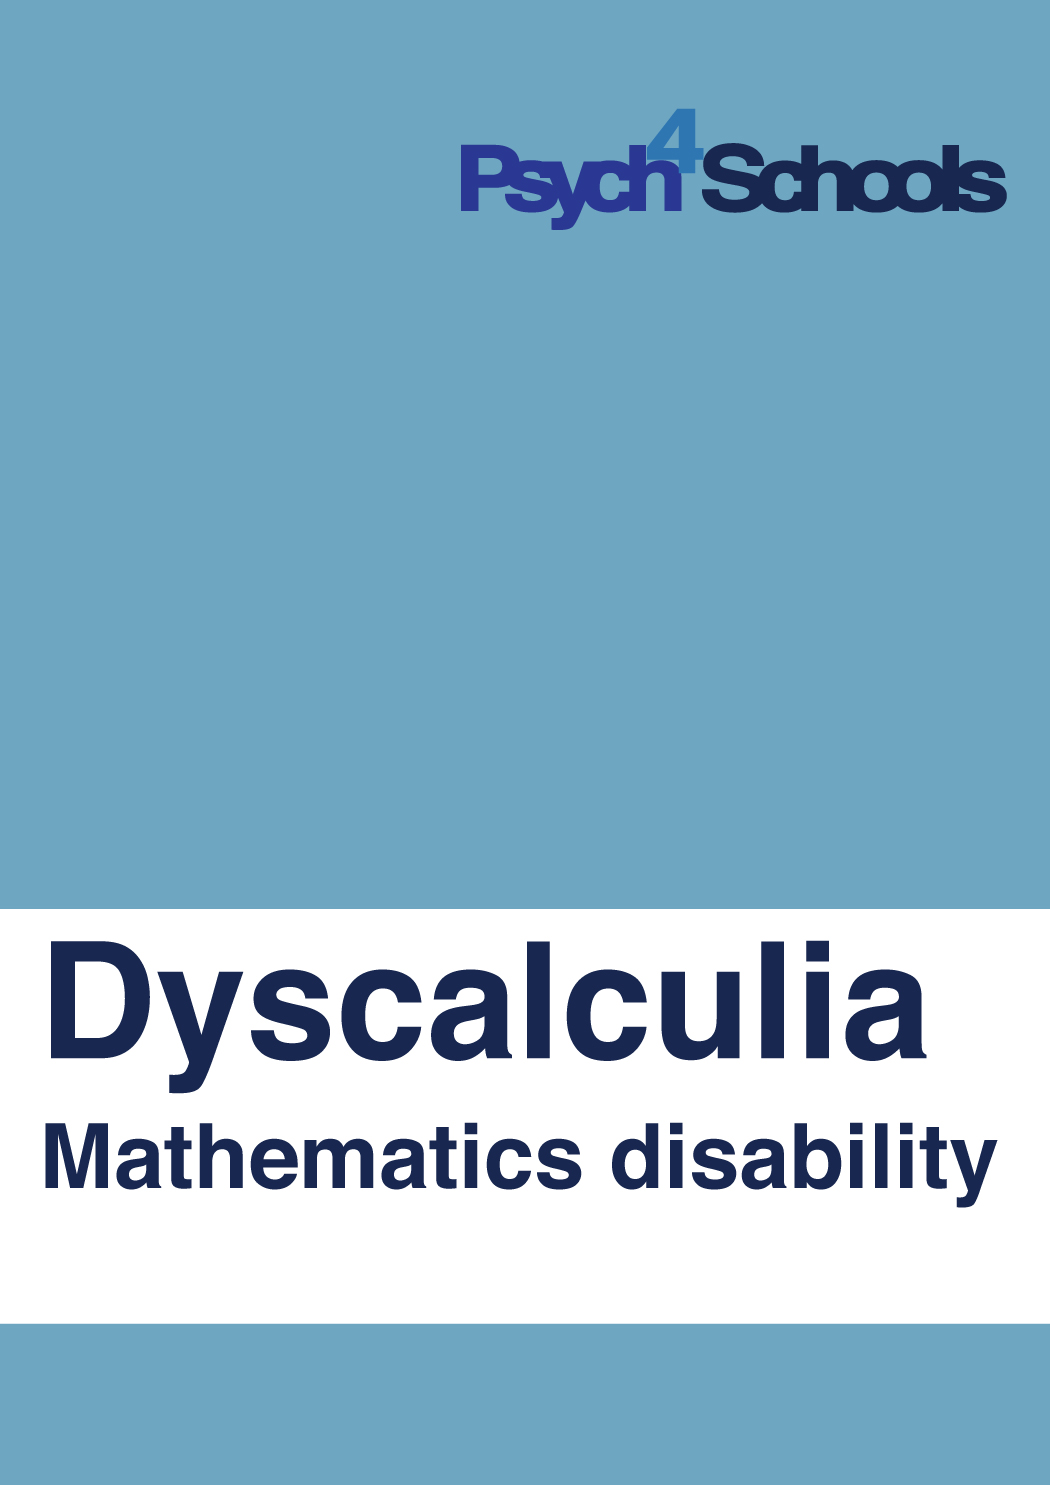 Dyscalculia - Free Resources - Psych4Schools